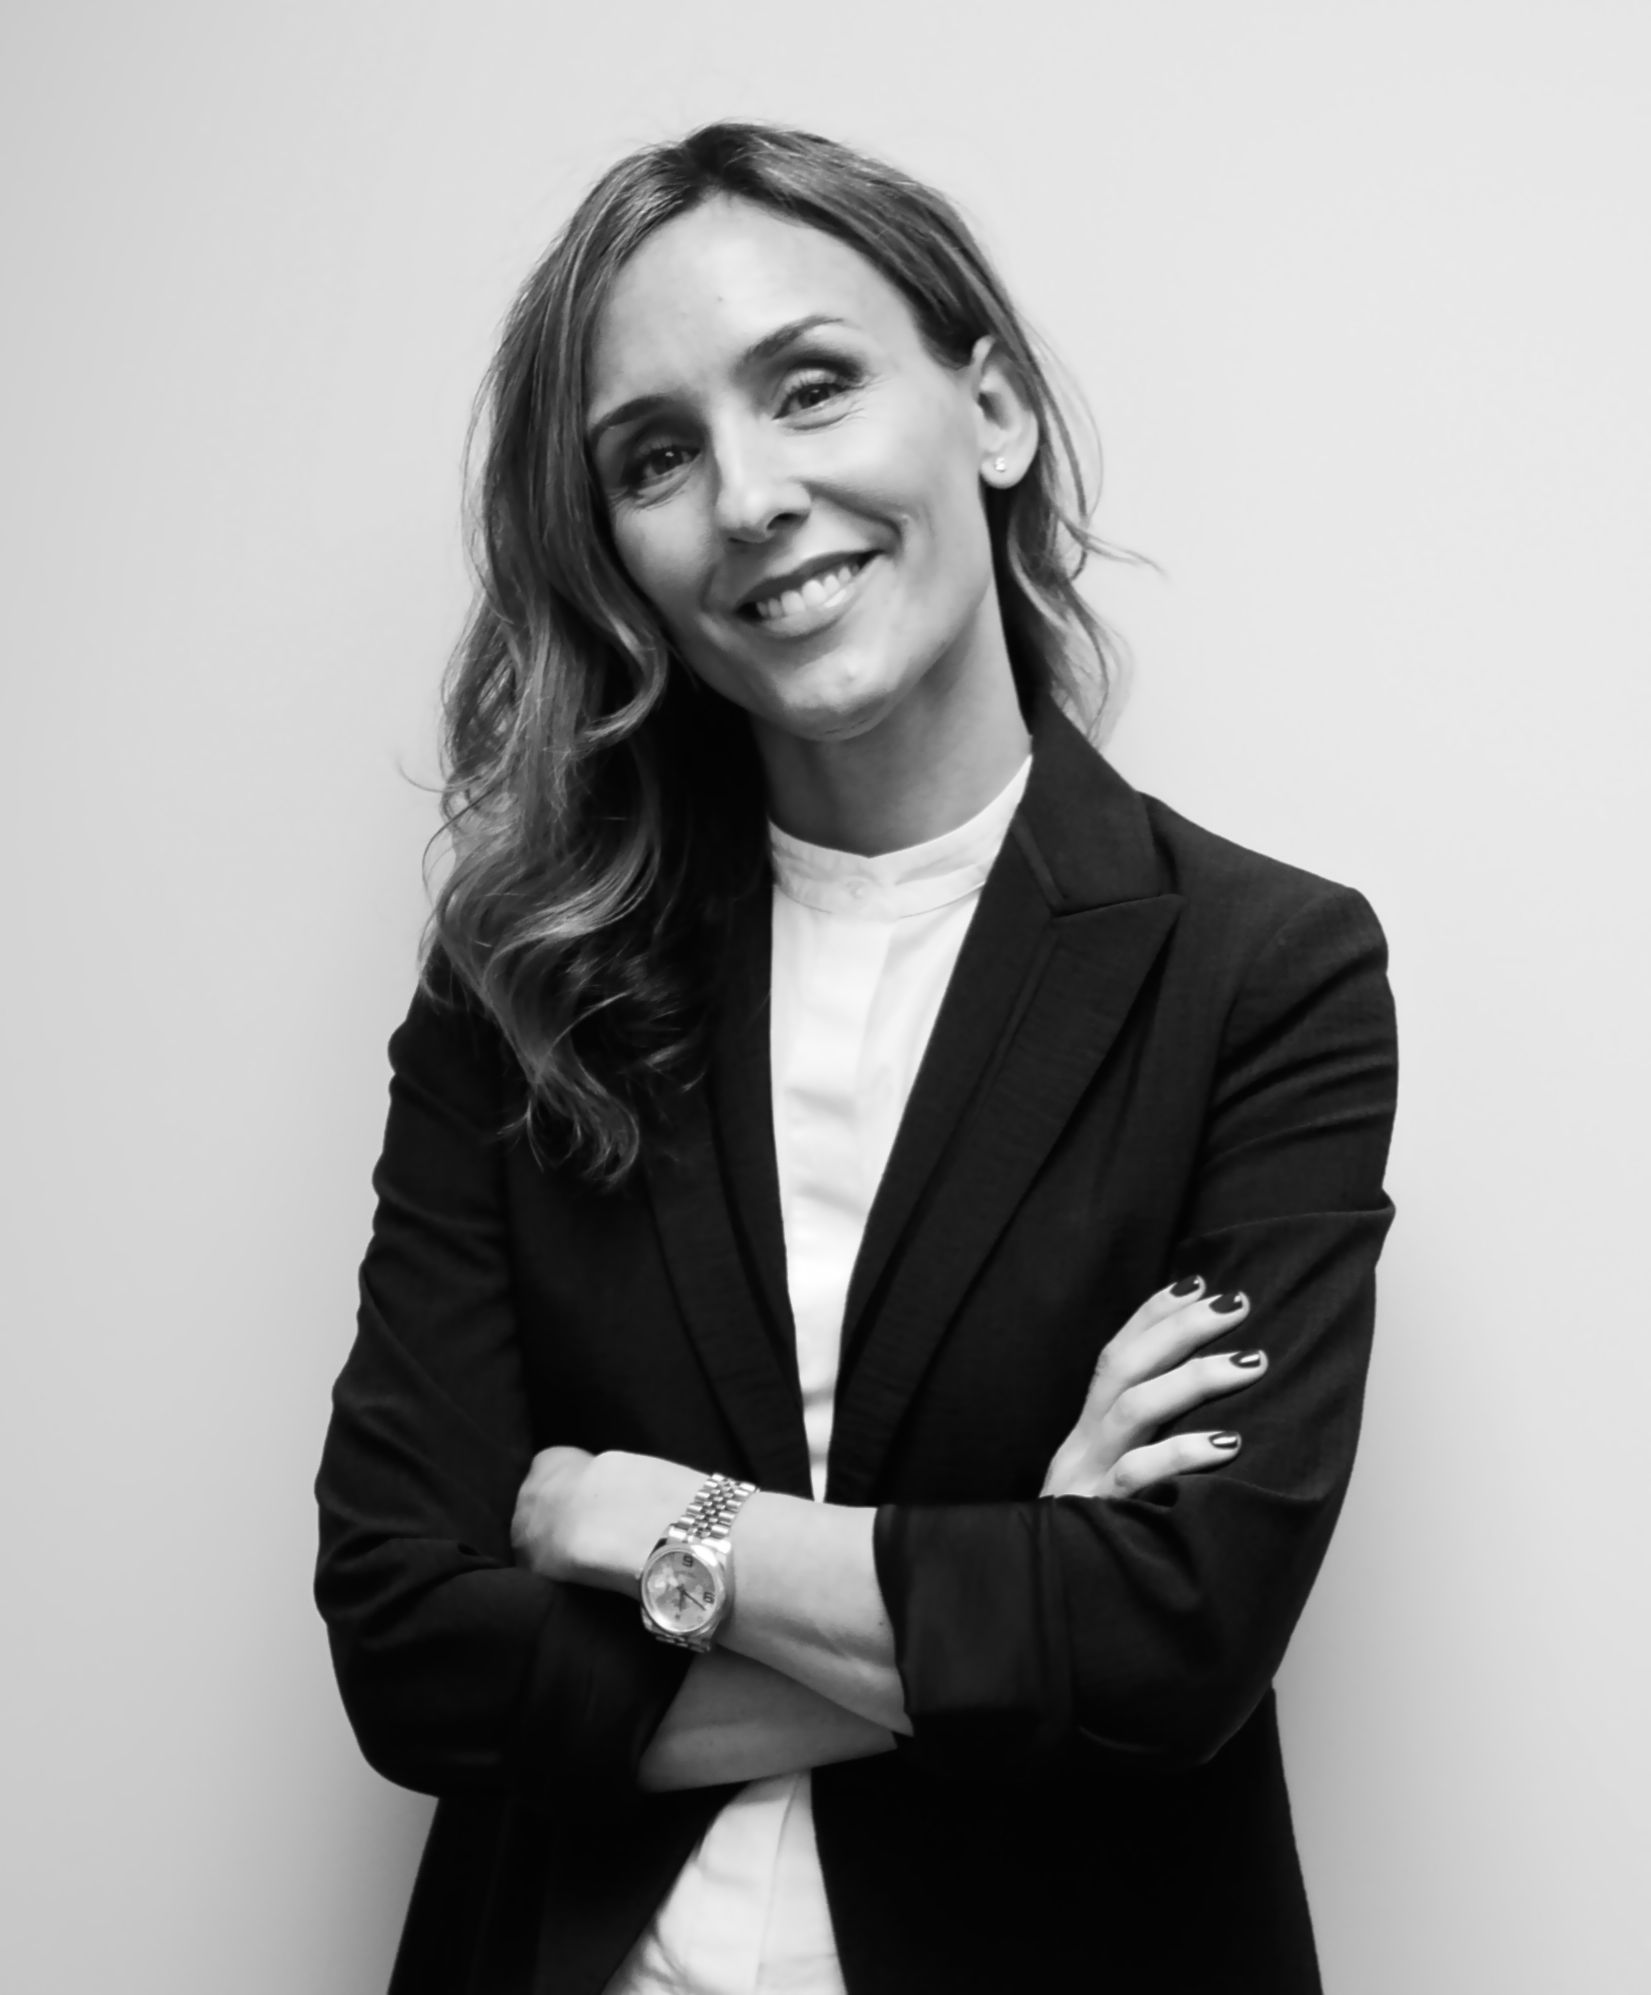 Vanessa Jacobs CEO & Founder of The Restory